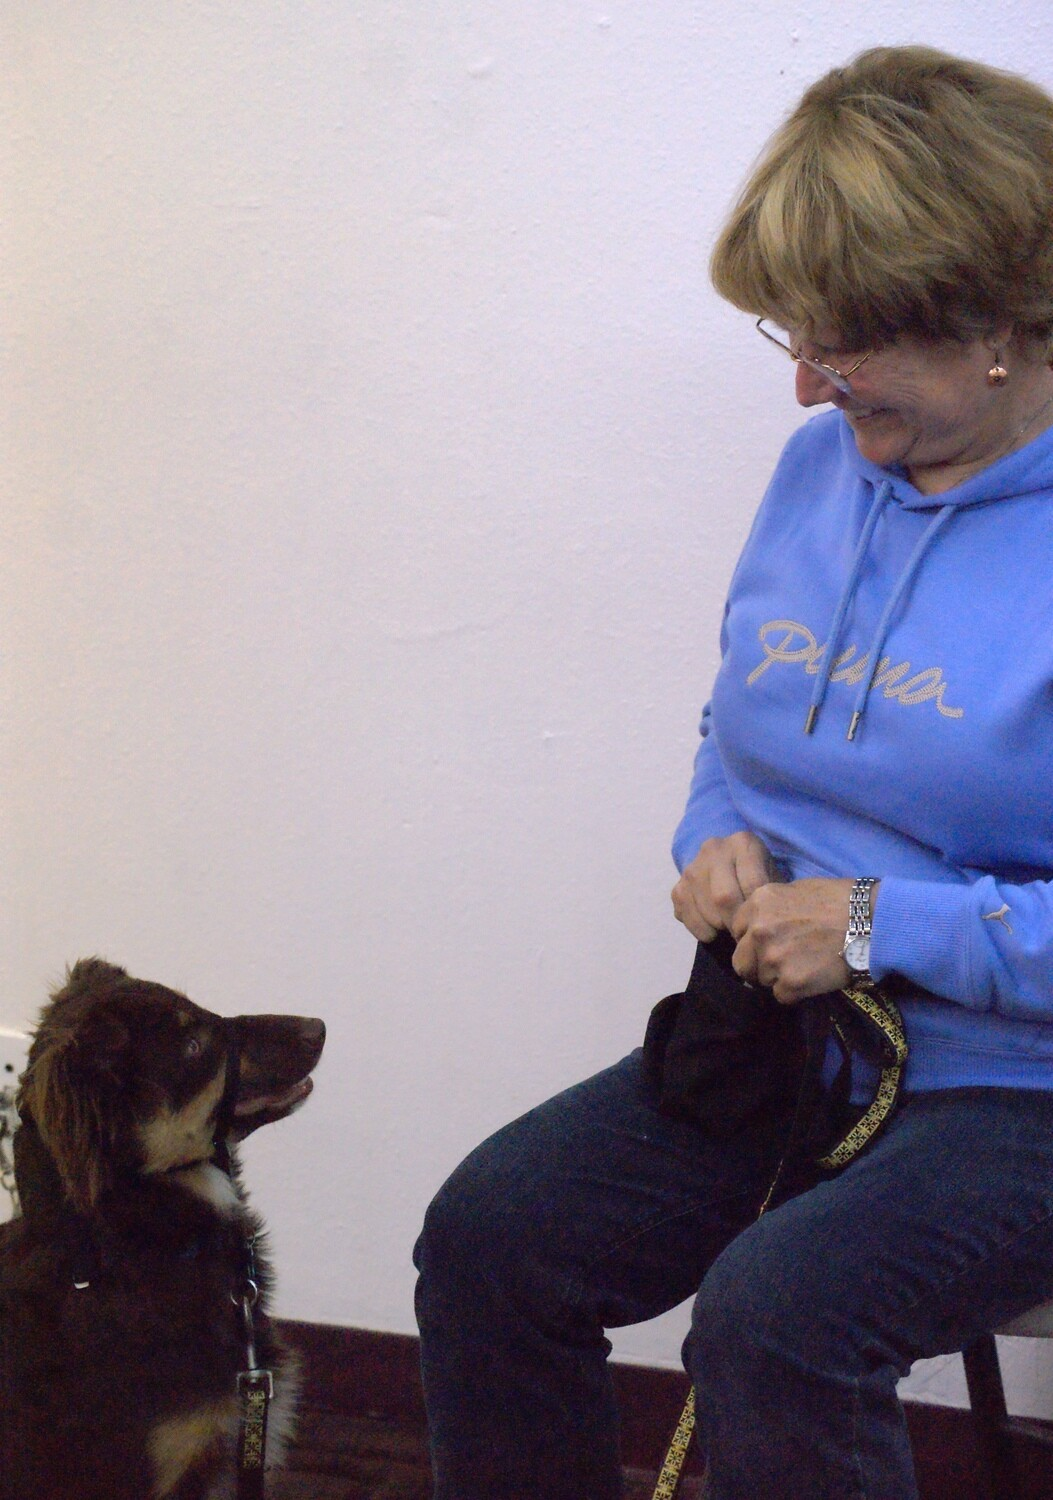 Well Trained  Puppies Level I: Thursday, April 29, 2021 @ 6:15PM (seminar and 3 1 hr. classes) Alex, Instructor